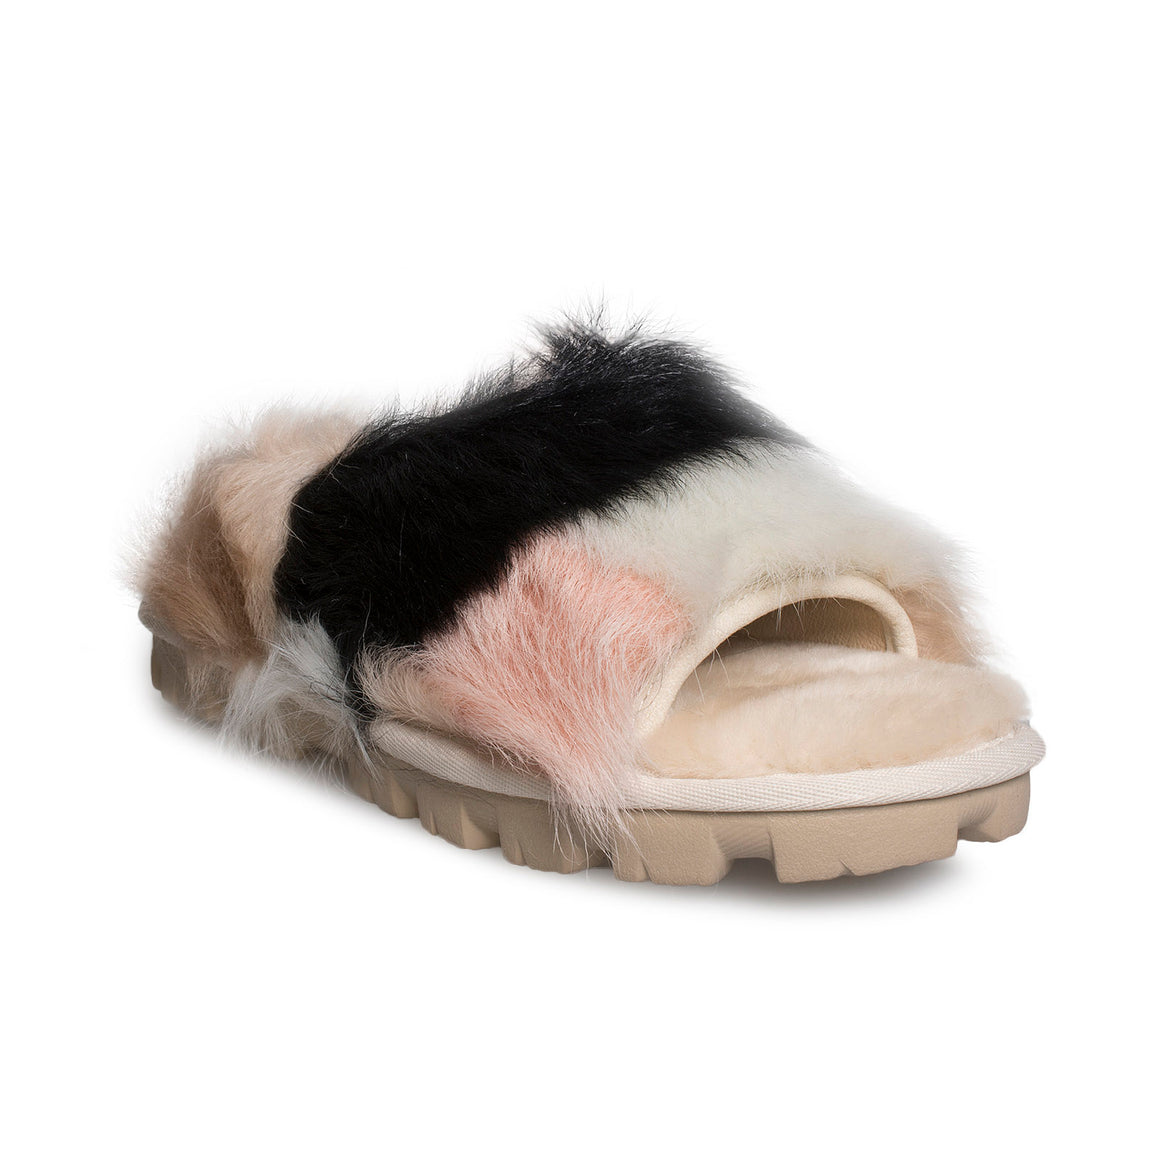 UGG Shag It Crazy Slide Natural Slippers  - Women's